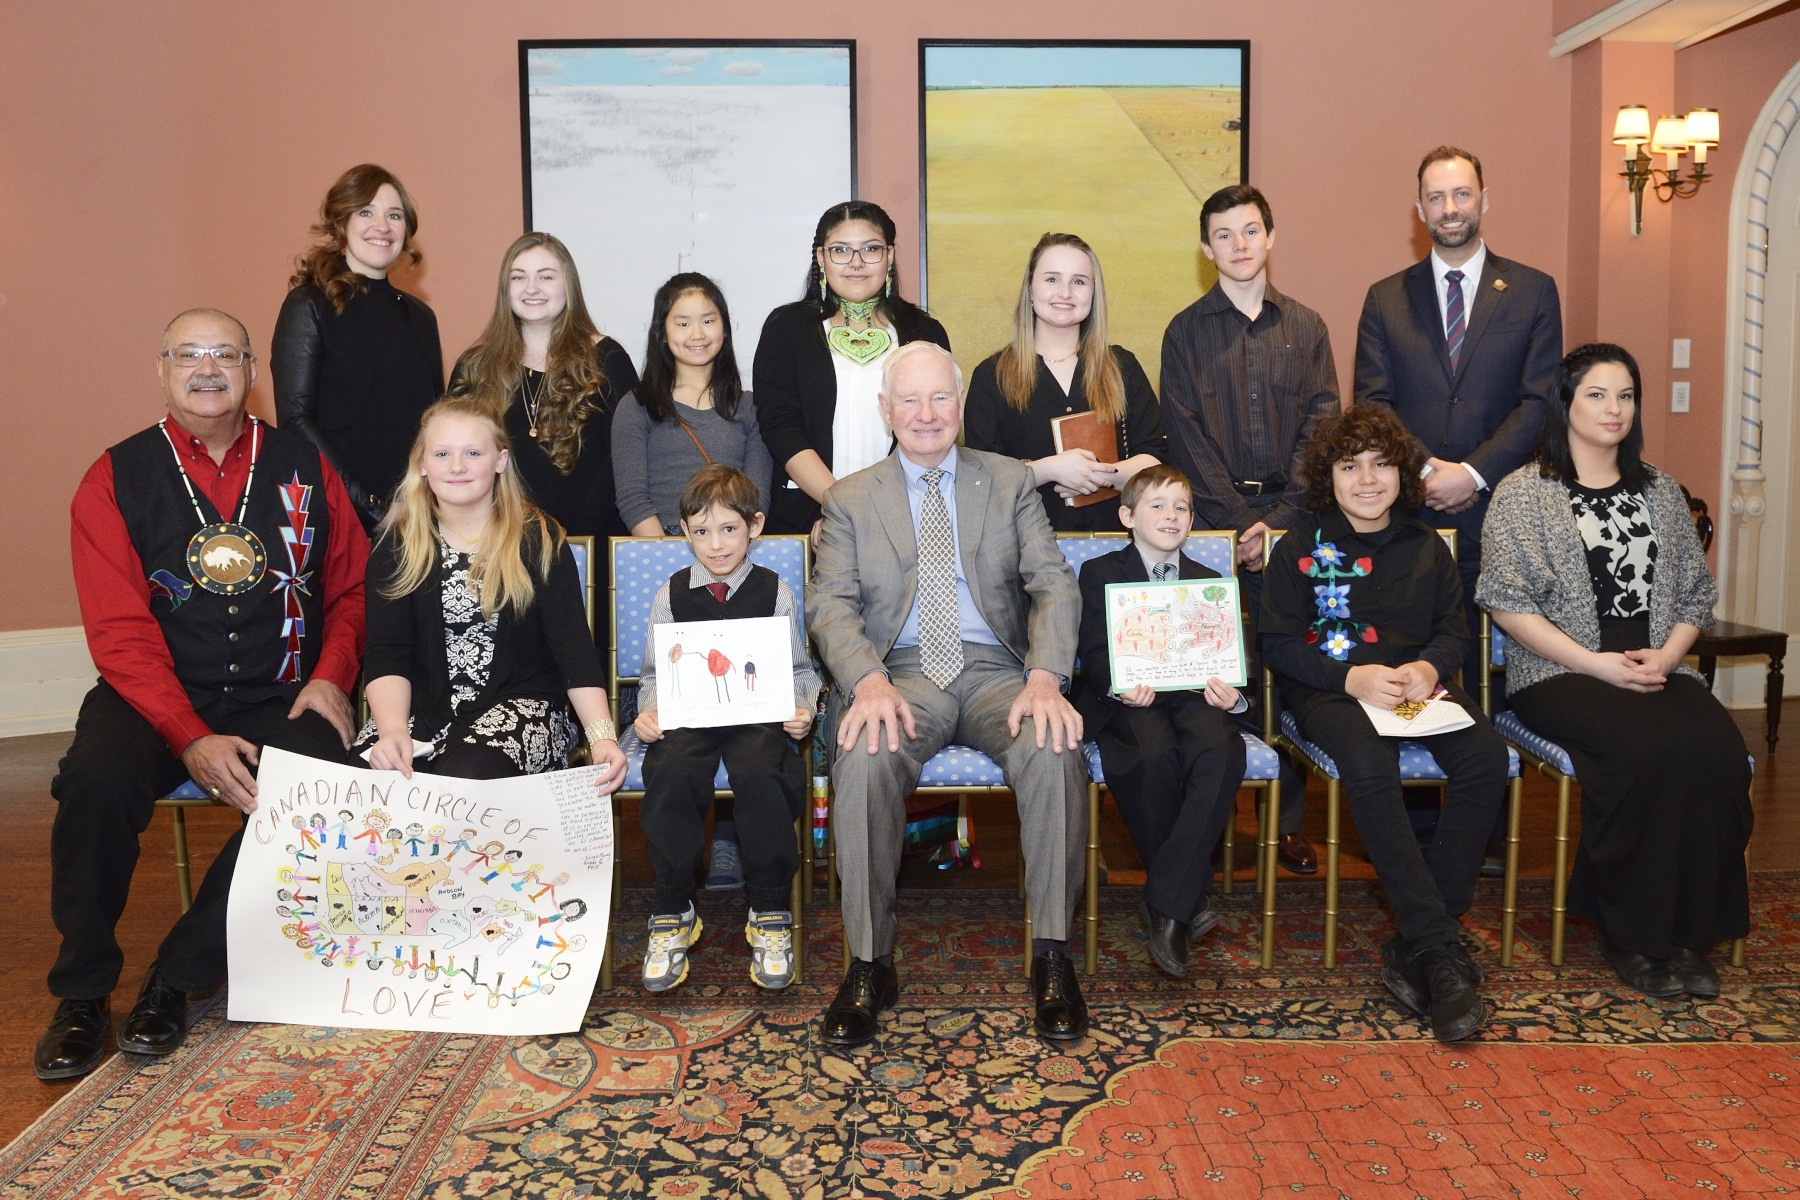 The selected recipients of the inaugural Imagine a Canada competition gathered for a photo with the Governor General, Ms. Hughes, Mr. Arcand and Mr. Moran.